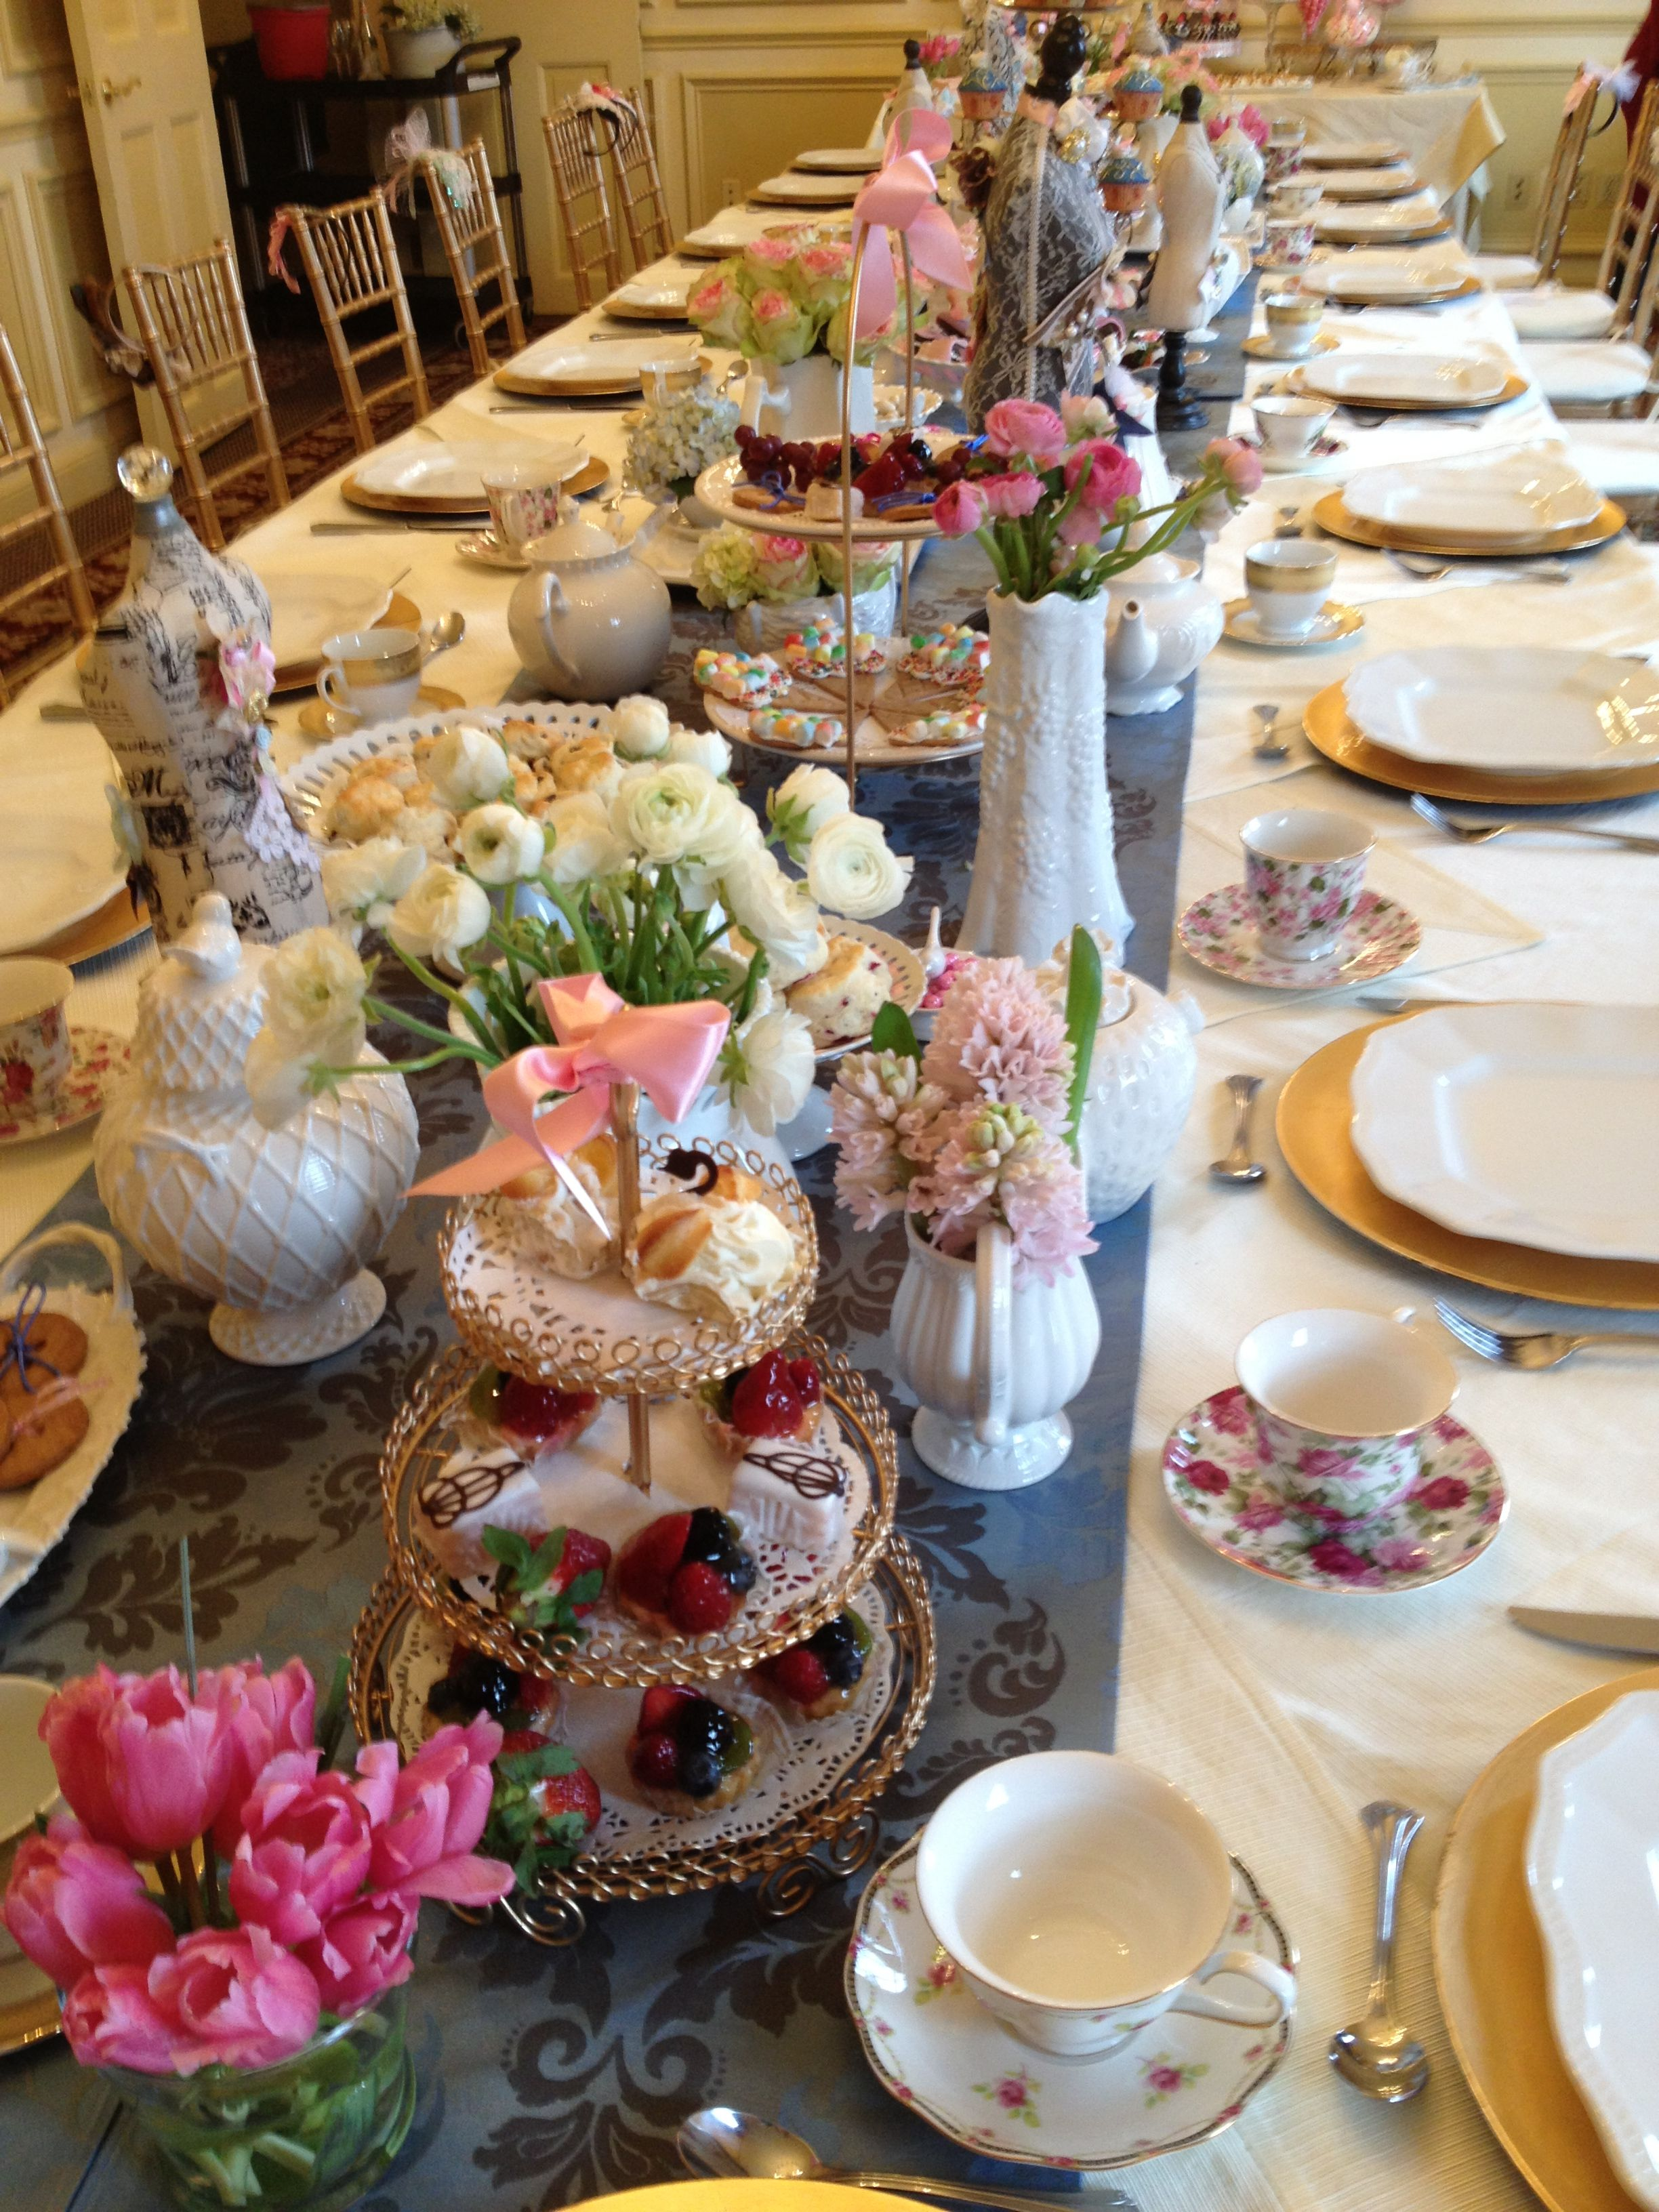 Table Set up for High Tea Party